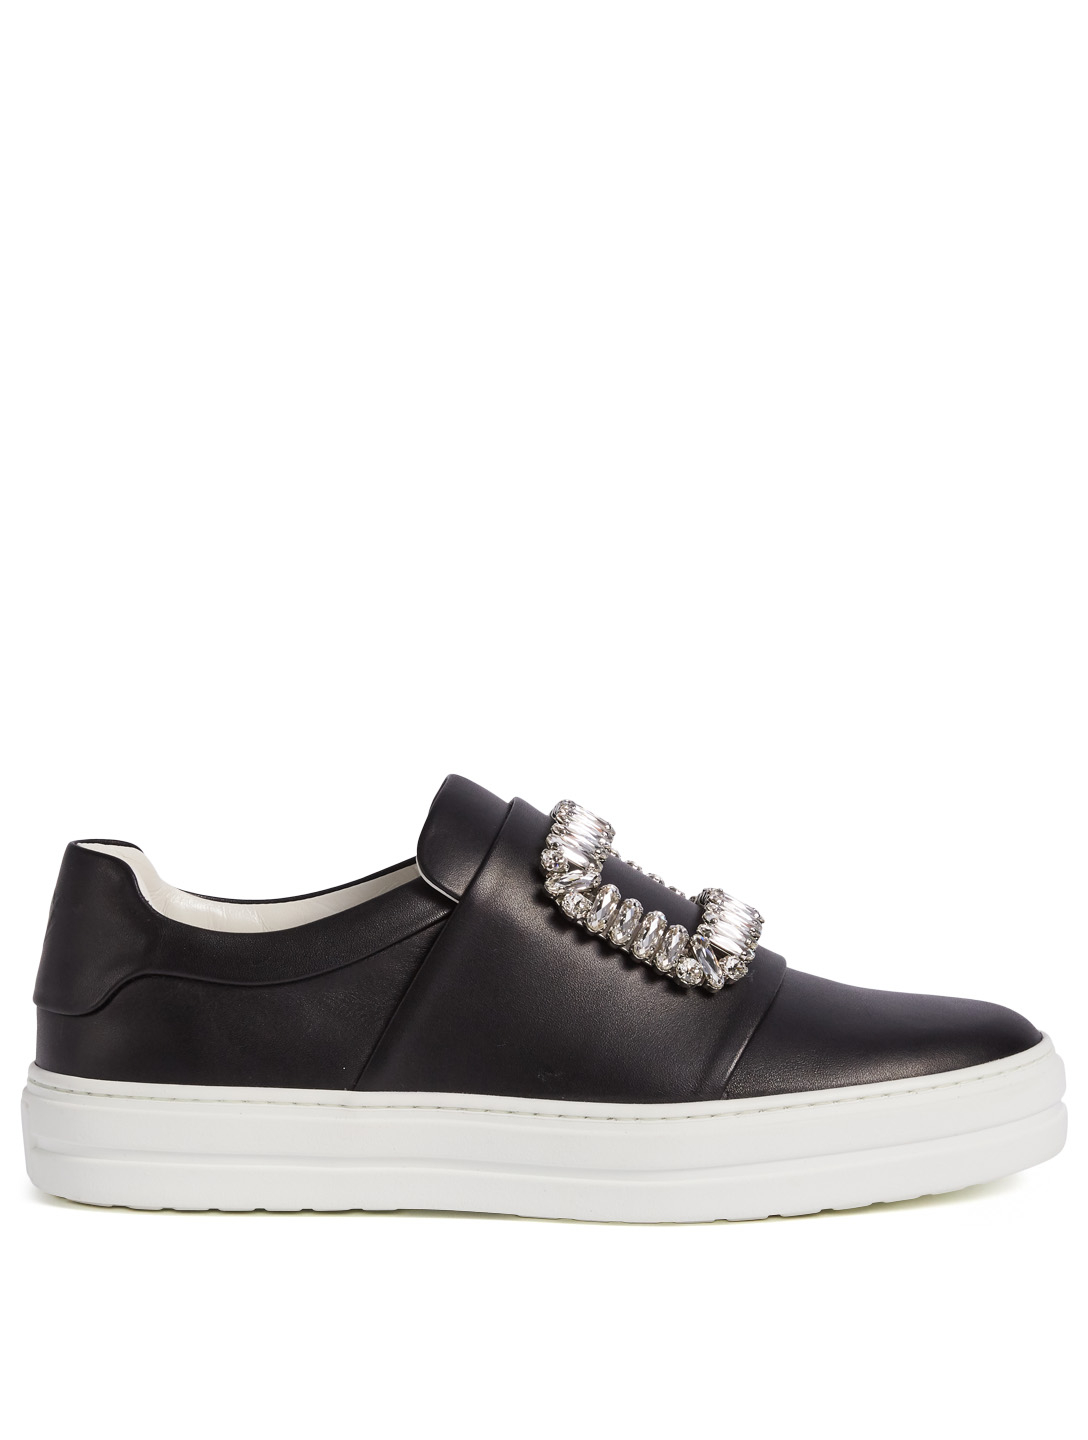 ROGER VIVIER Sneaky Viv Buckle Leather Sneakers Womens Black